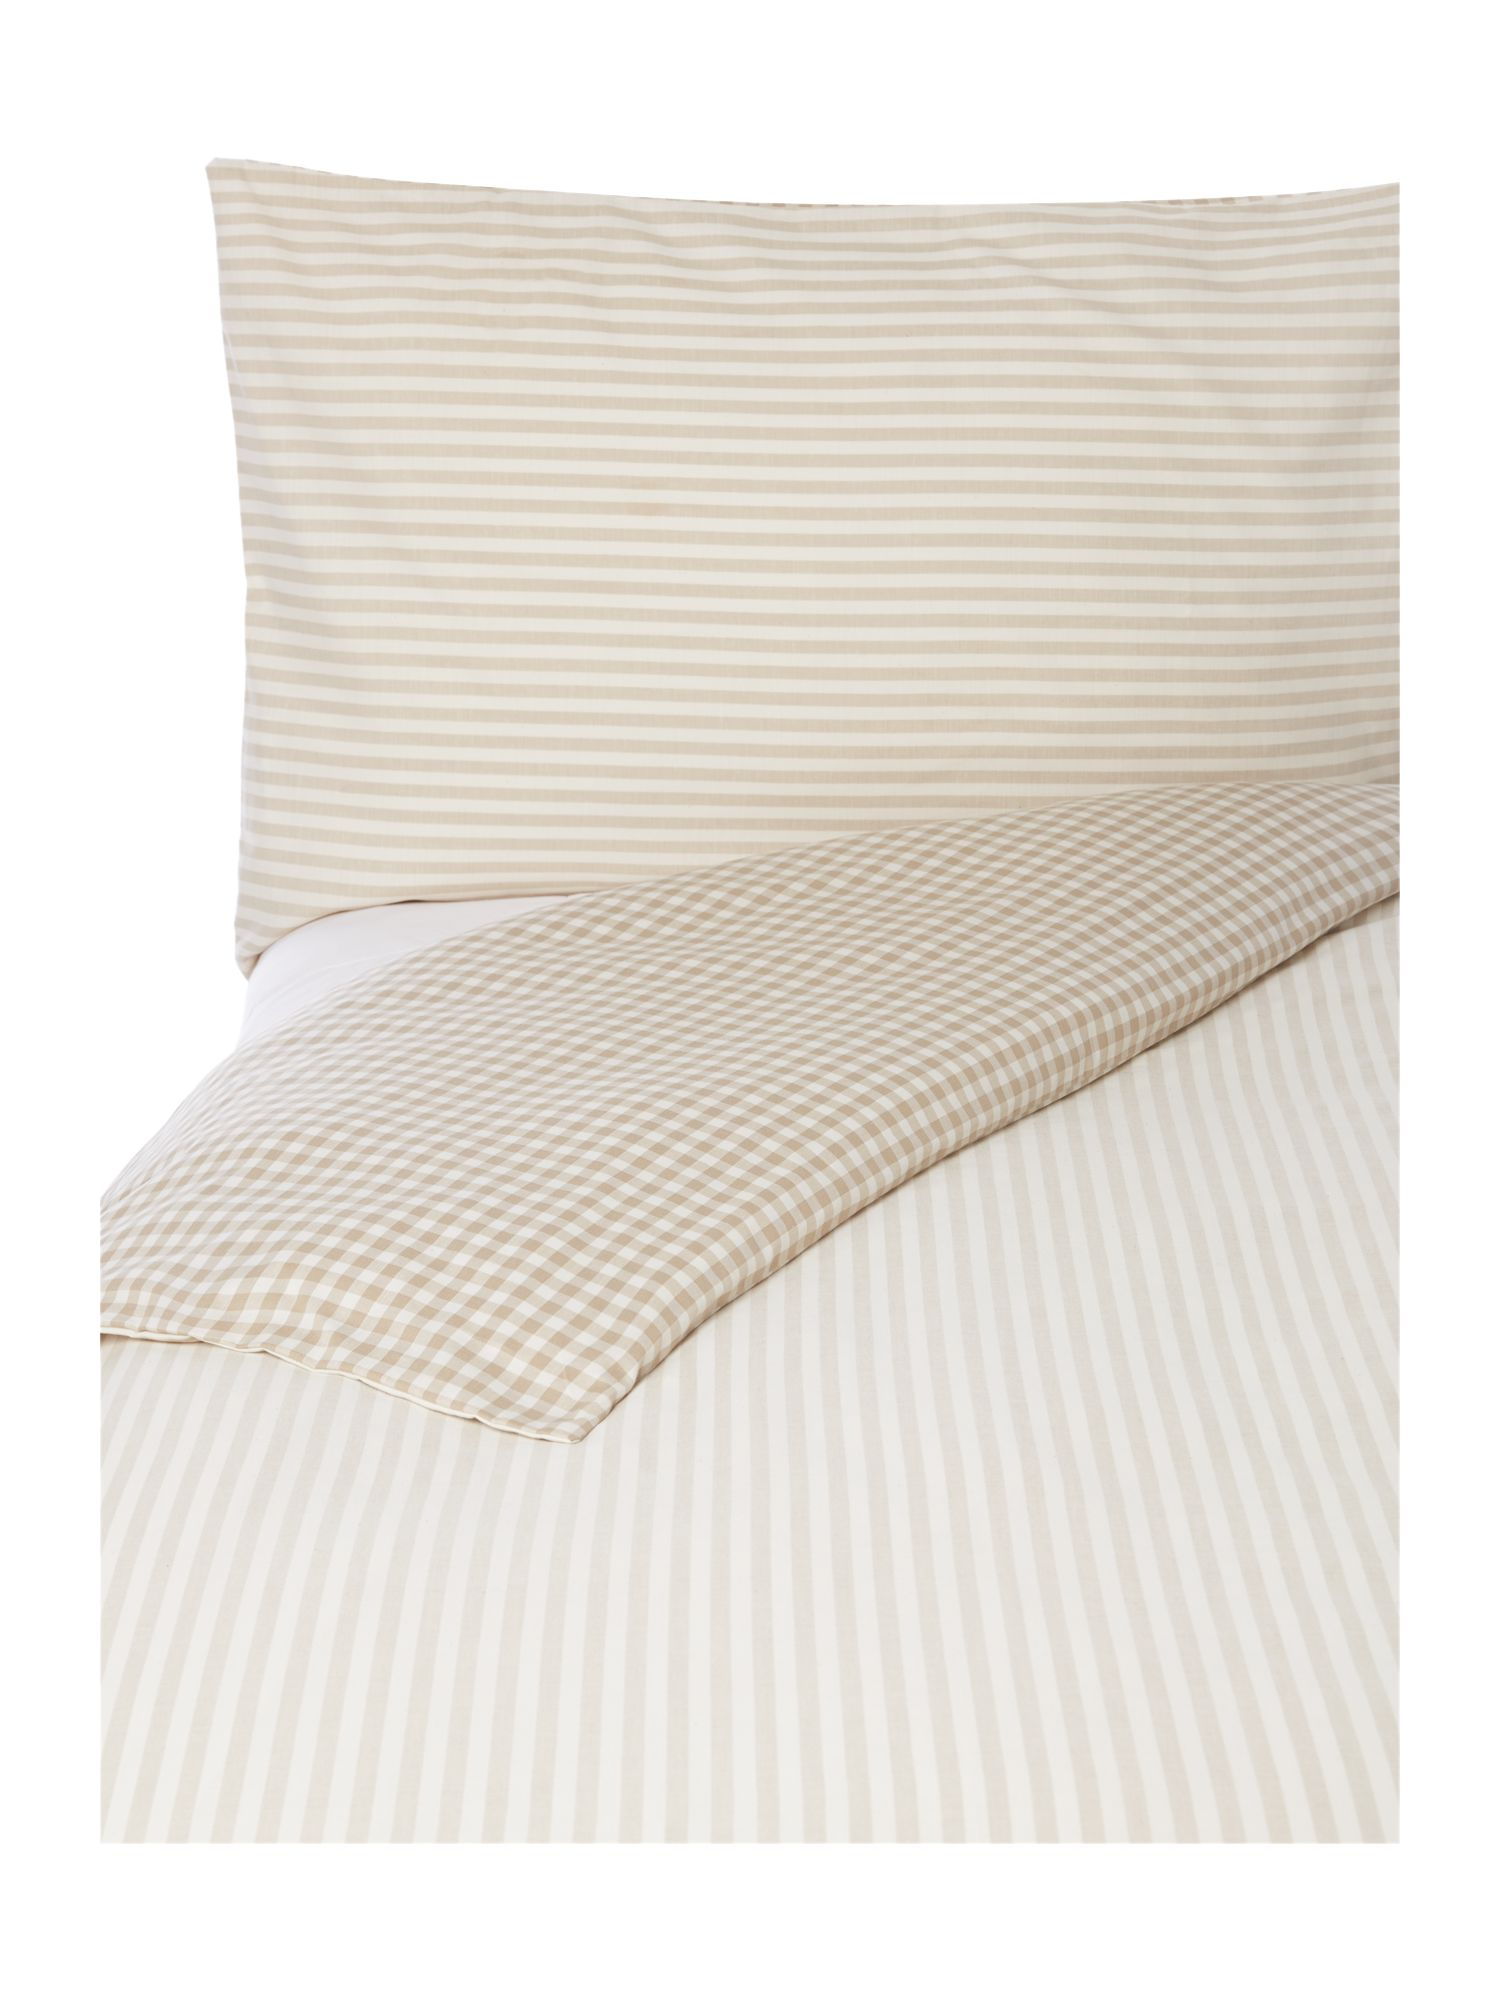 Beige stripe bed linen set